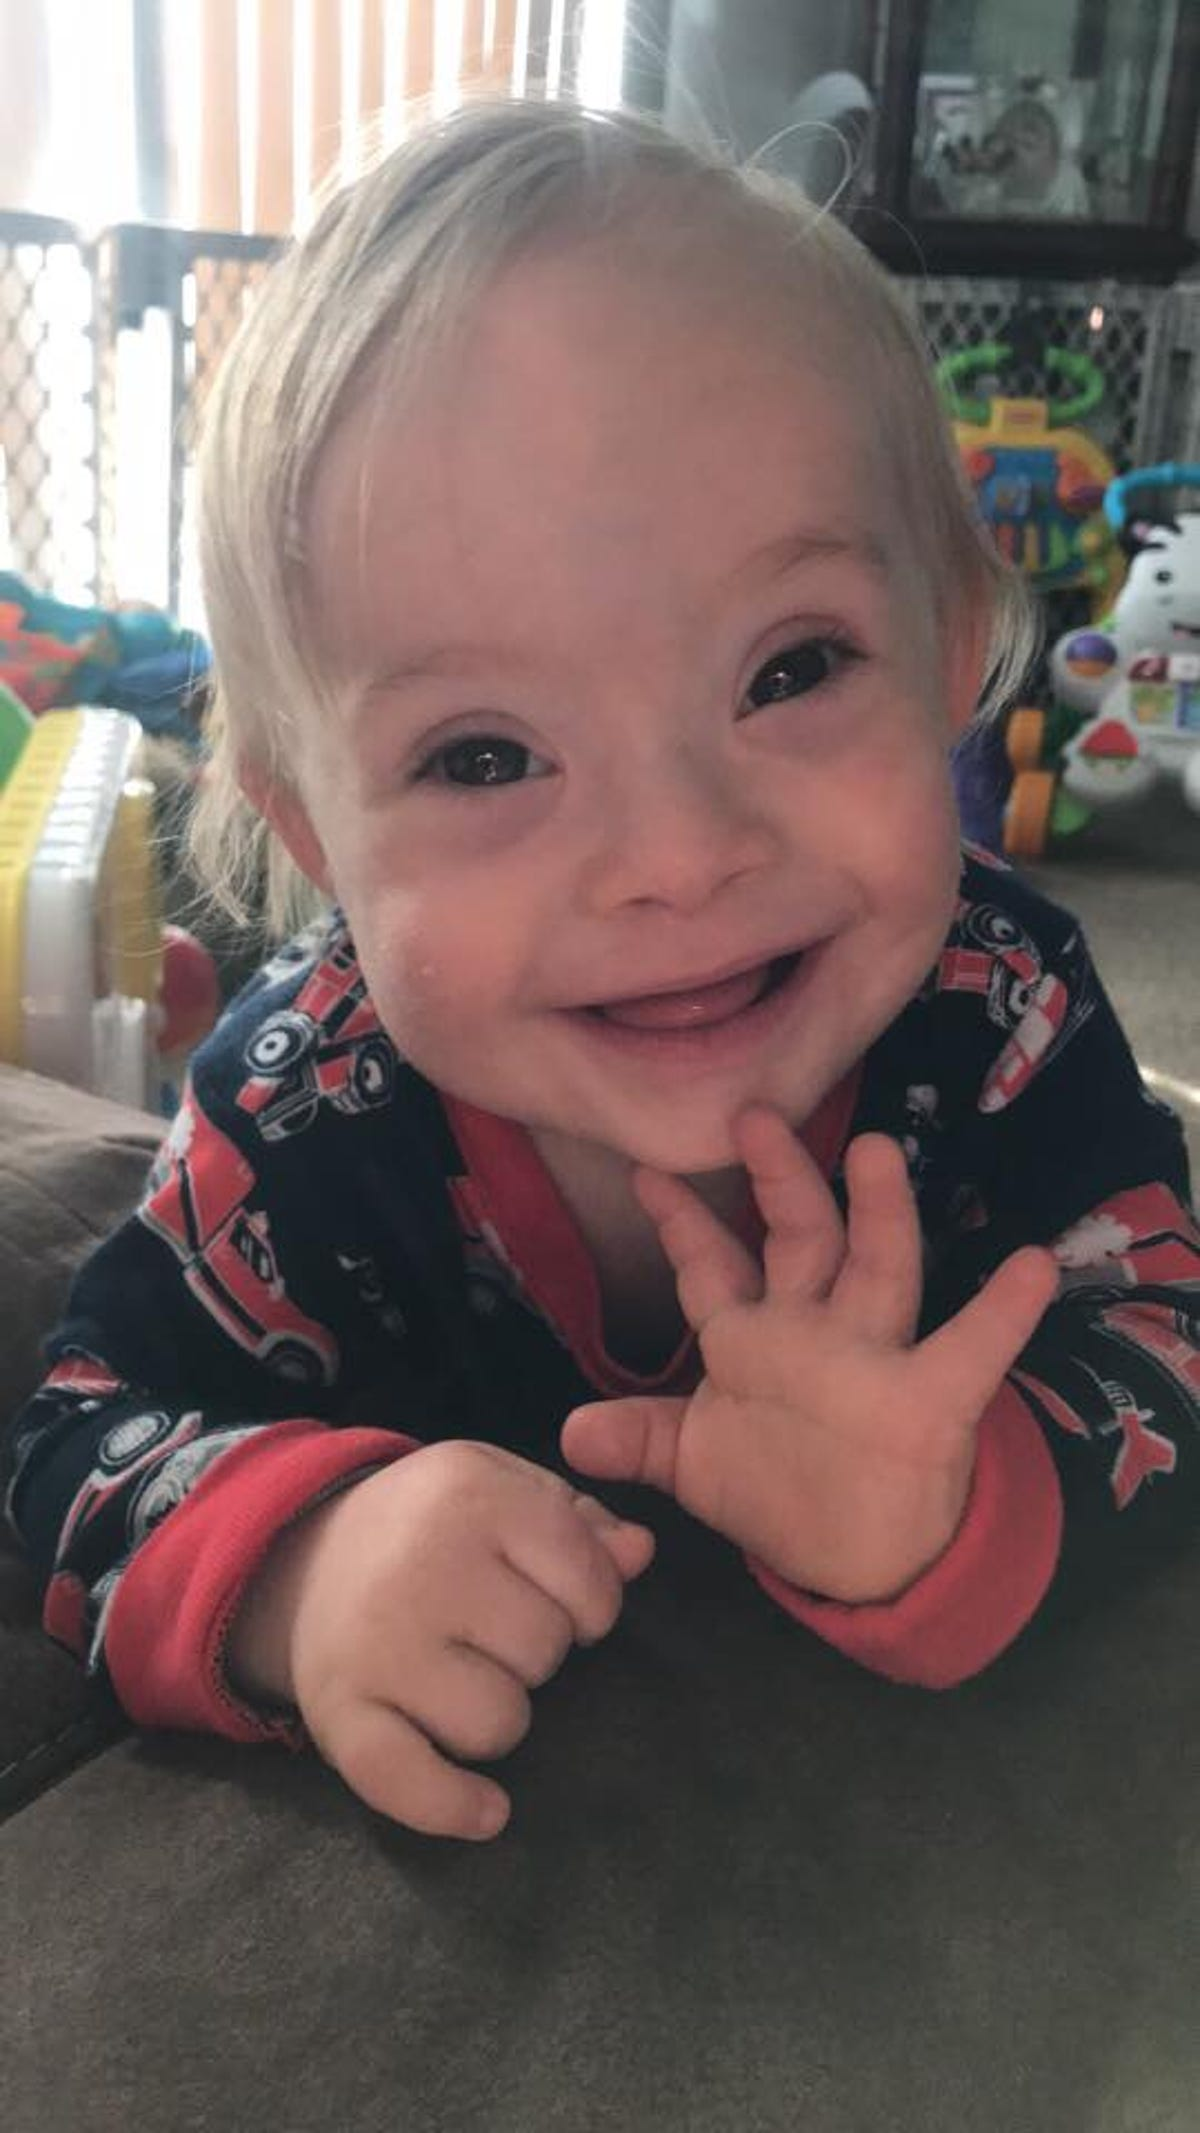 Gerber Baby search now open: How your child can be the new